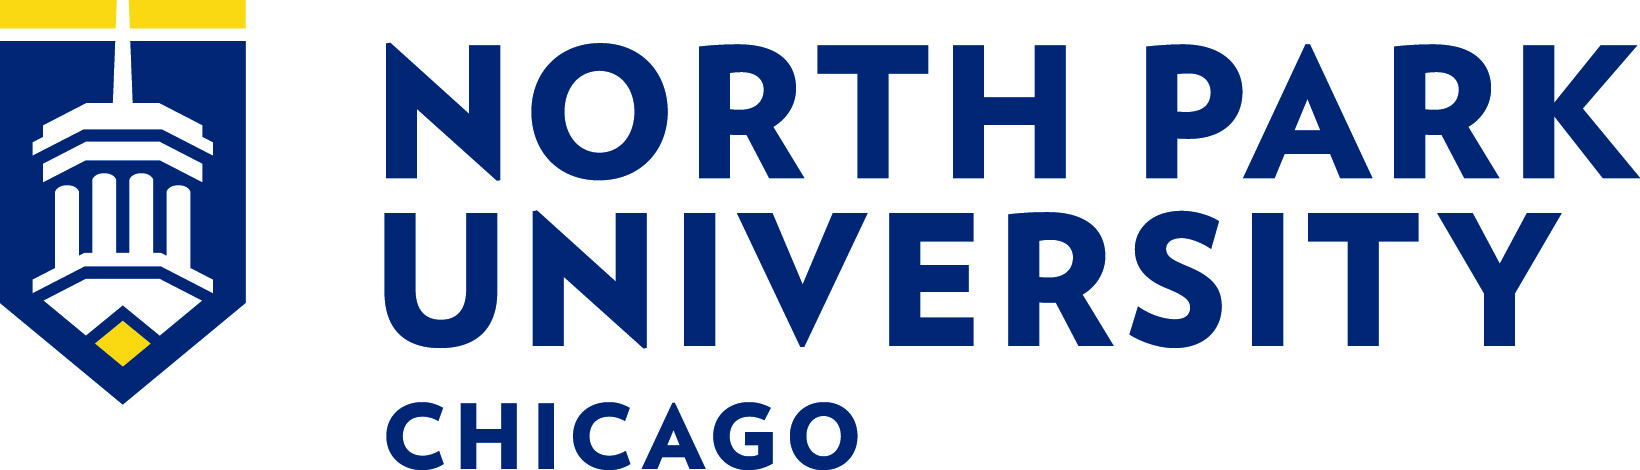 NORTH PARK UNIVERSITY - CHICAGO - ILLINOIS - USA